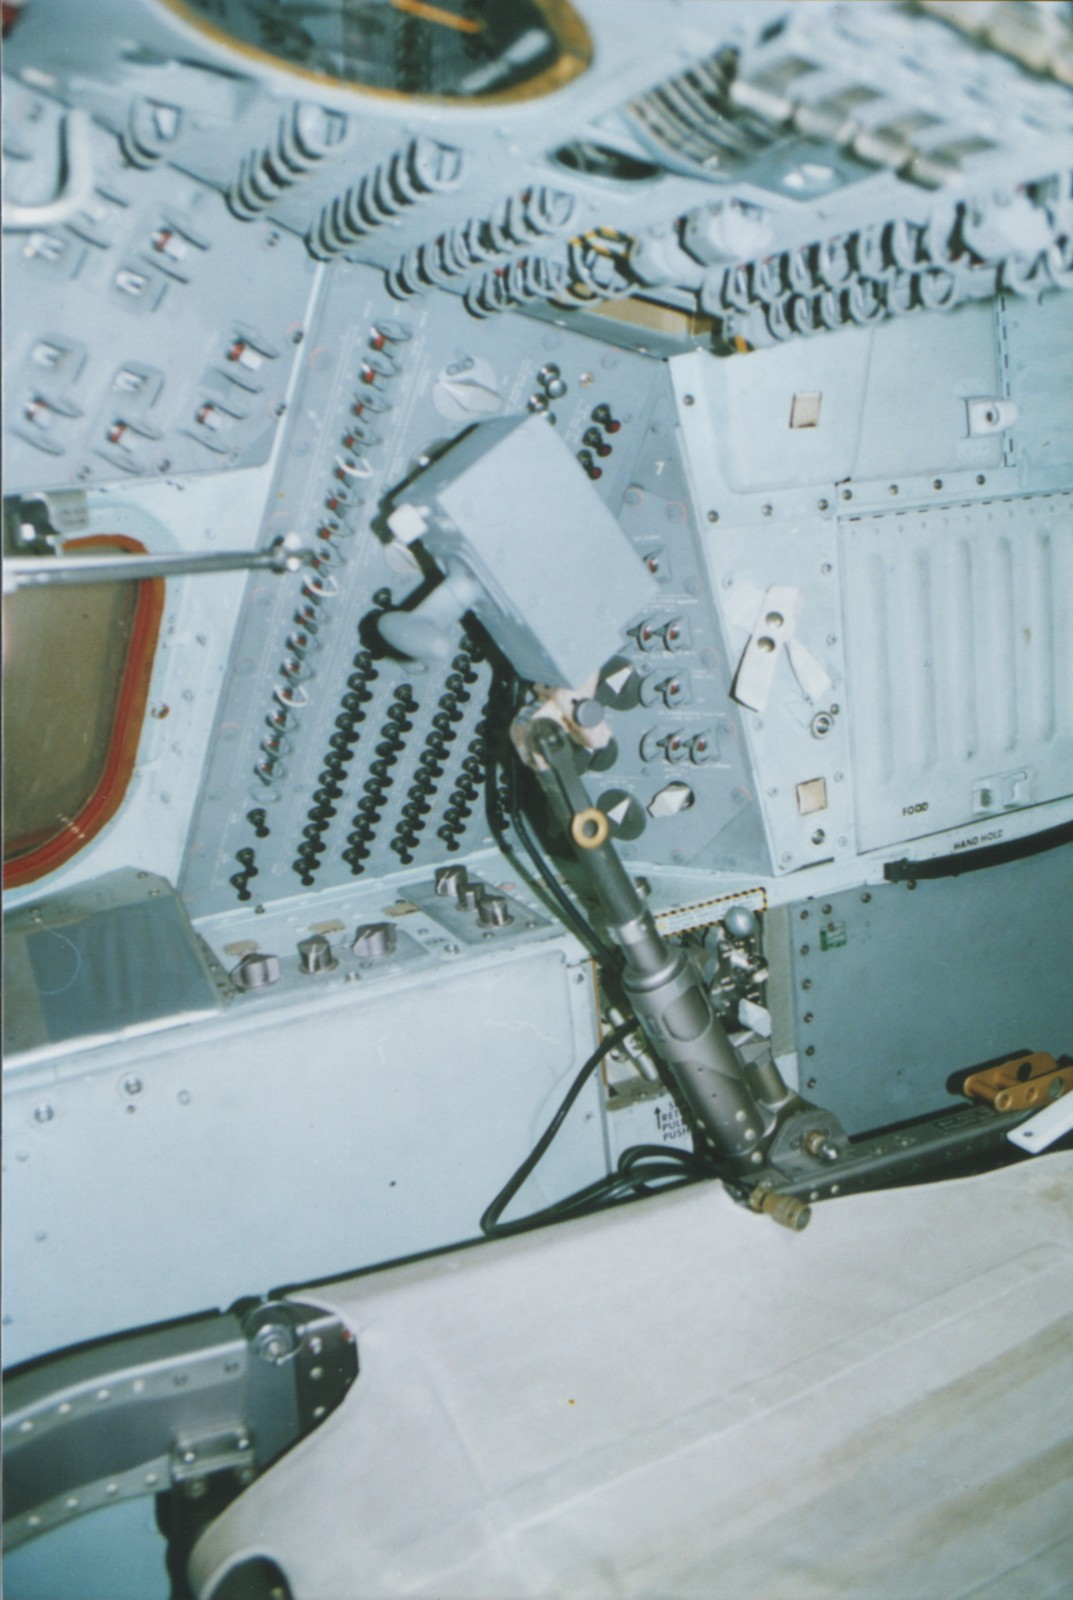 apollo capsule control panel - photo #18